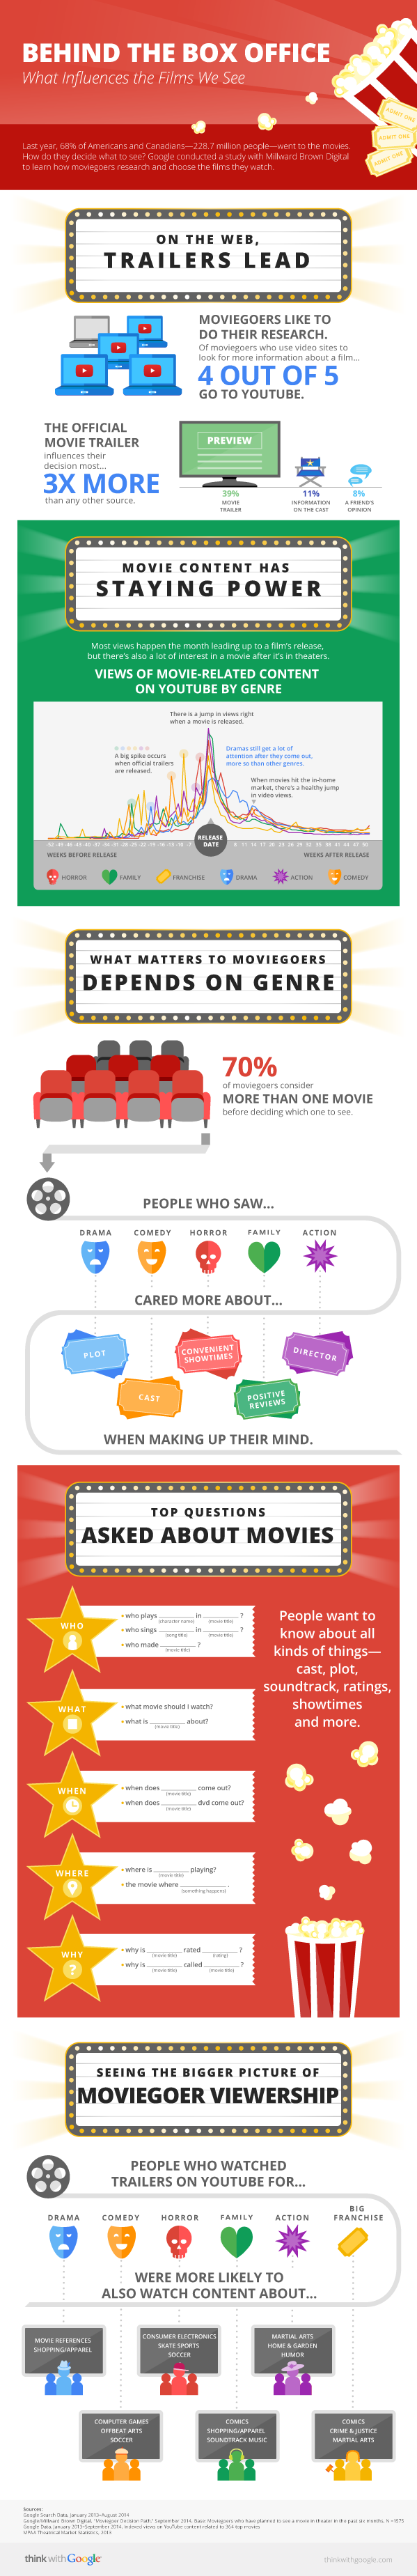 Behind the Box Office - Google Infographic